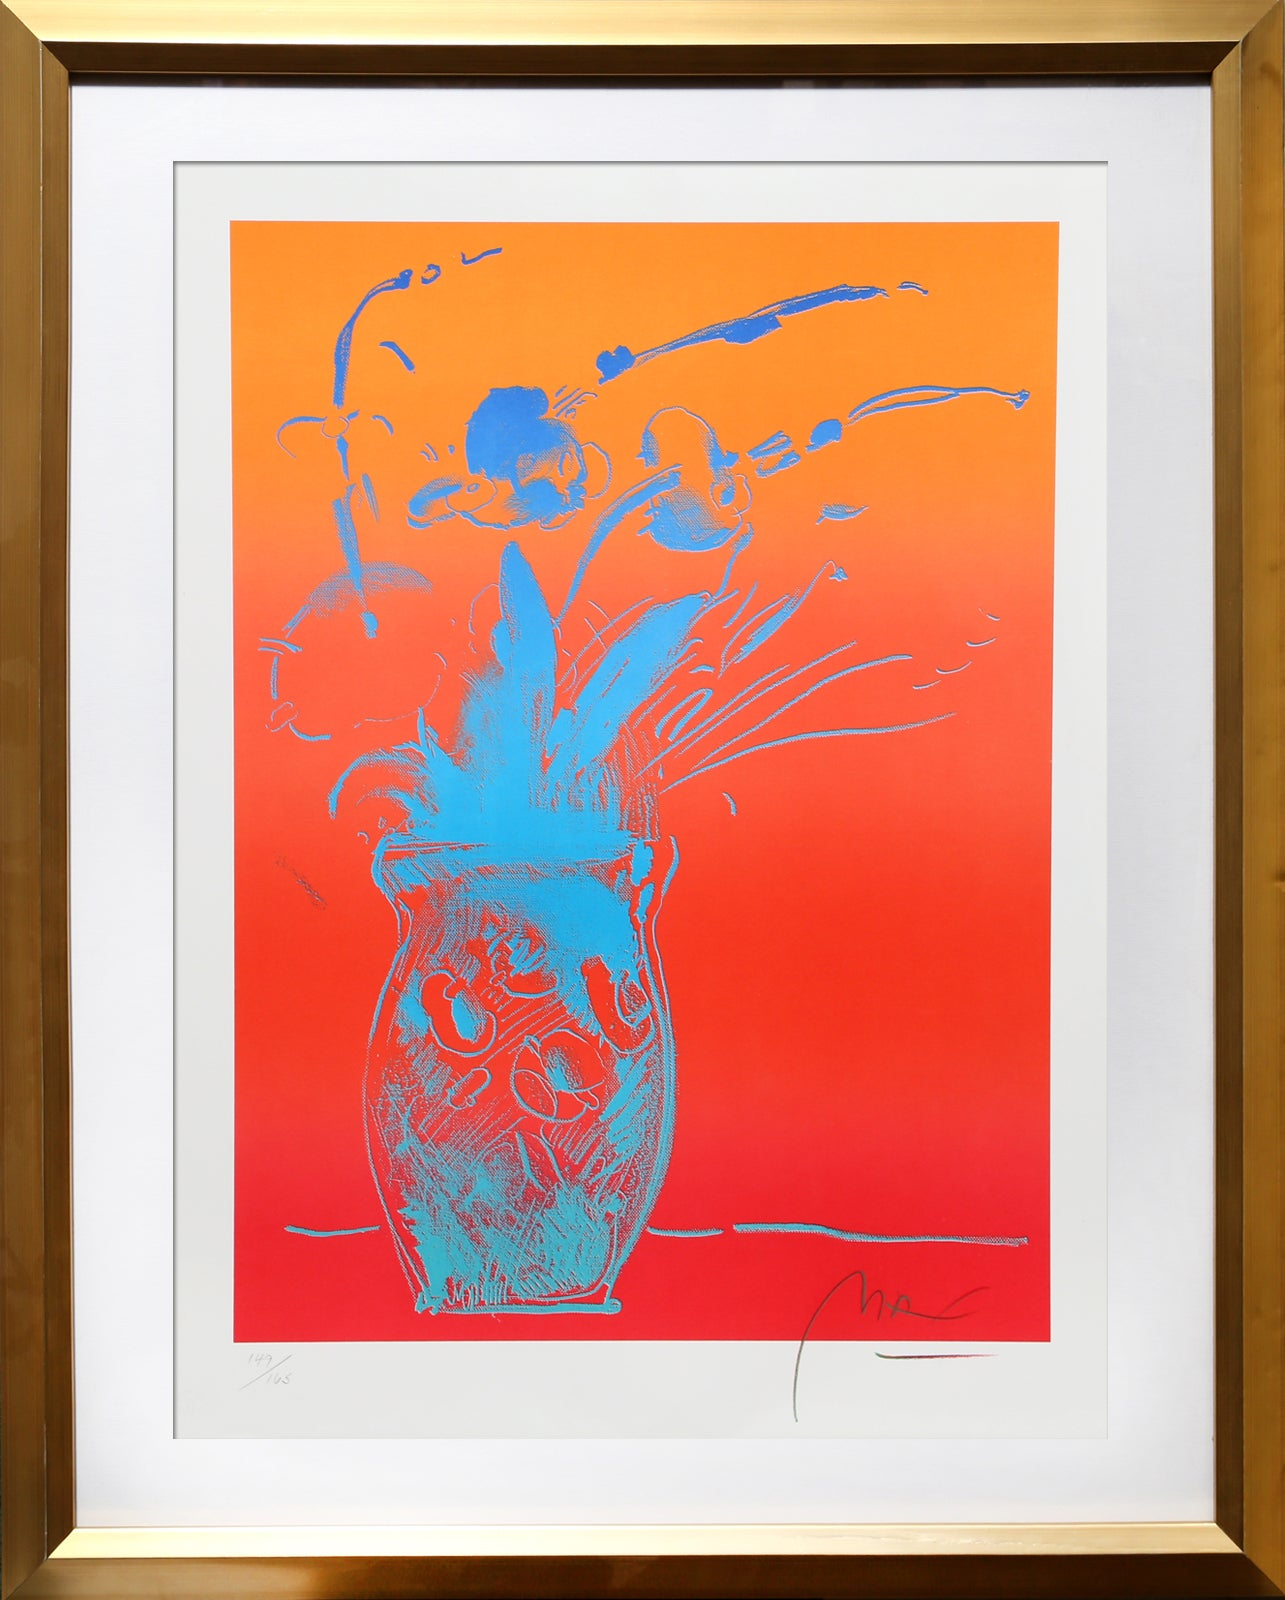 Blue Vase, Framed Lithograph by Peter Max